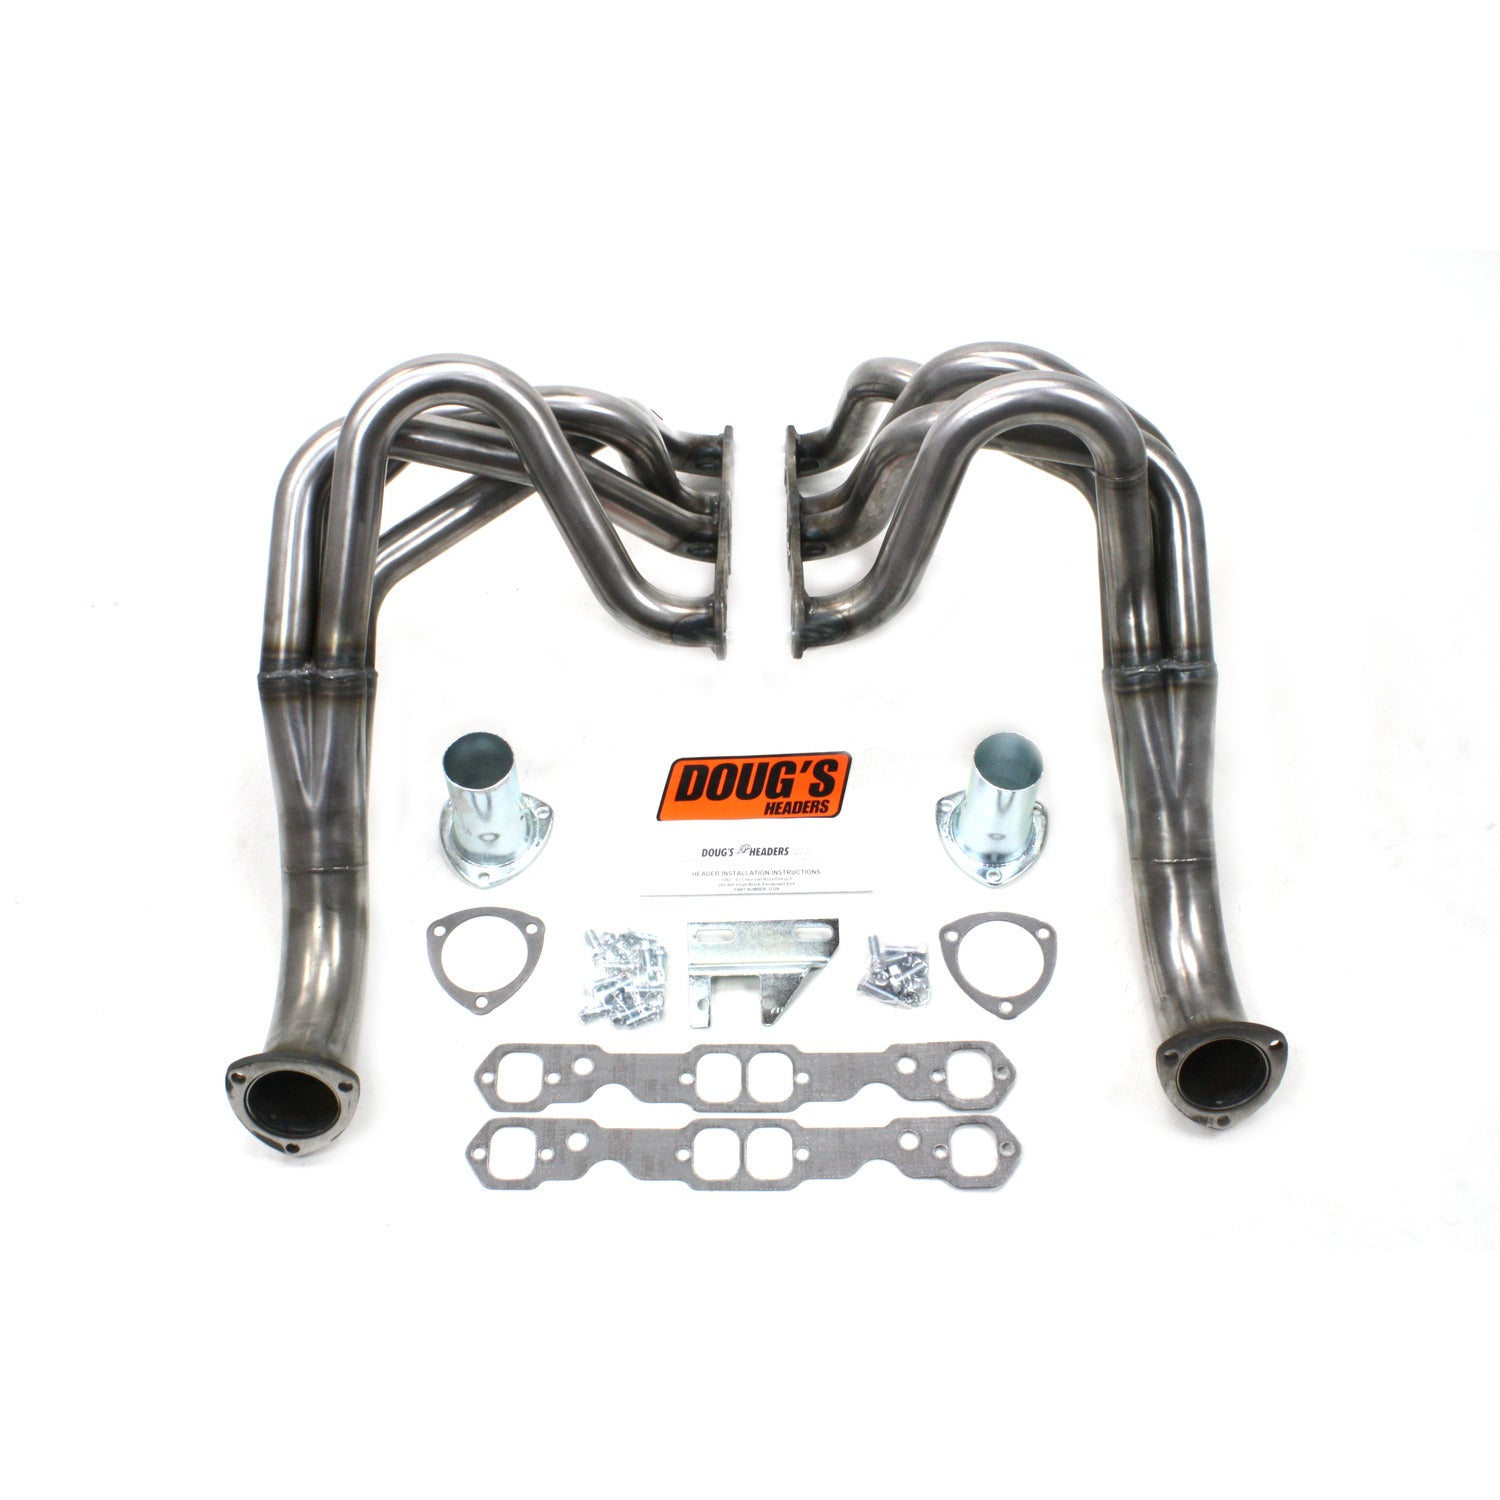 "Doug's Headers D329-R 1 3/4"" 4-Tube Full Length Header Chevy II Small Block Chevrolet 62-67 Raw Steel"